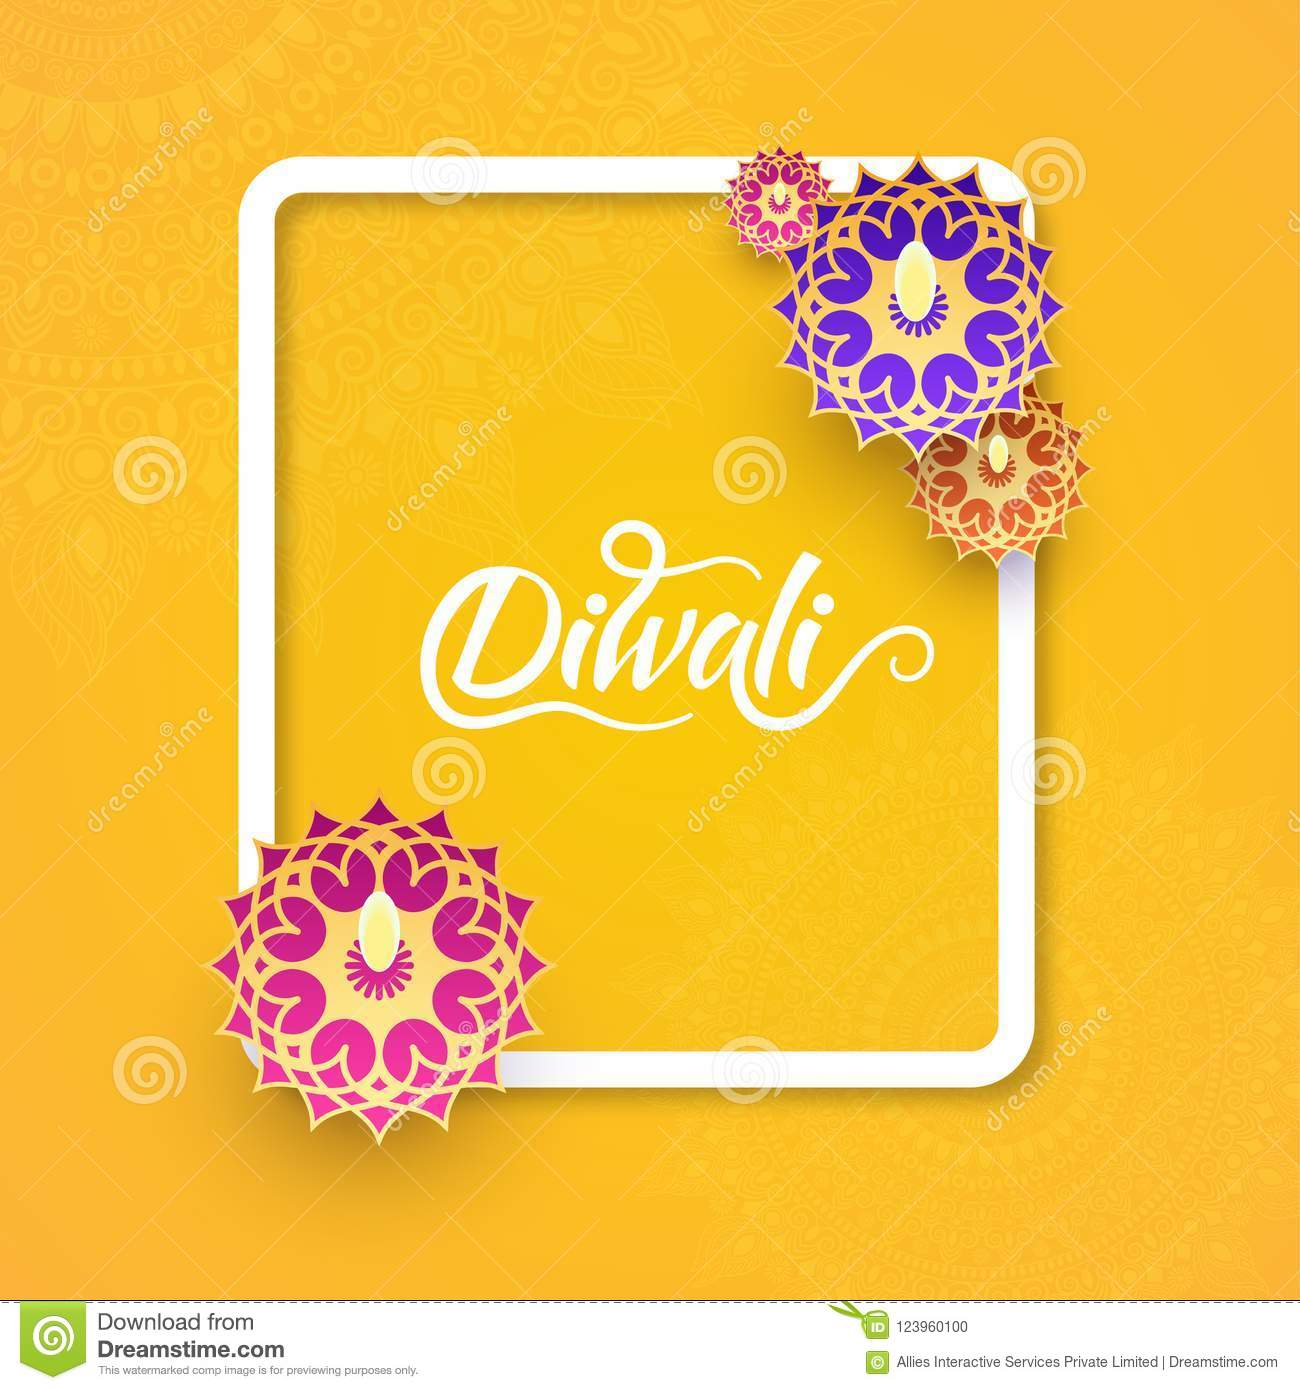 Top View Of Diwali Celebration Yellow Greeting Card Design Decor